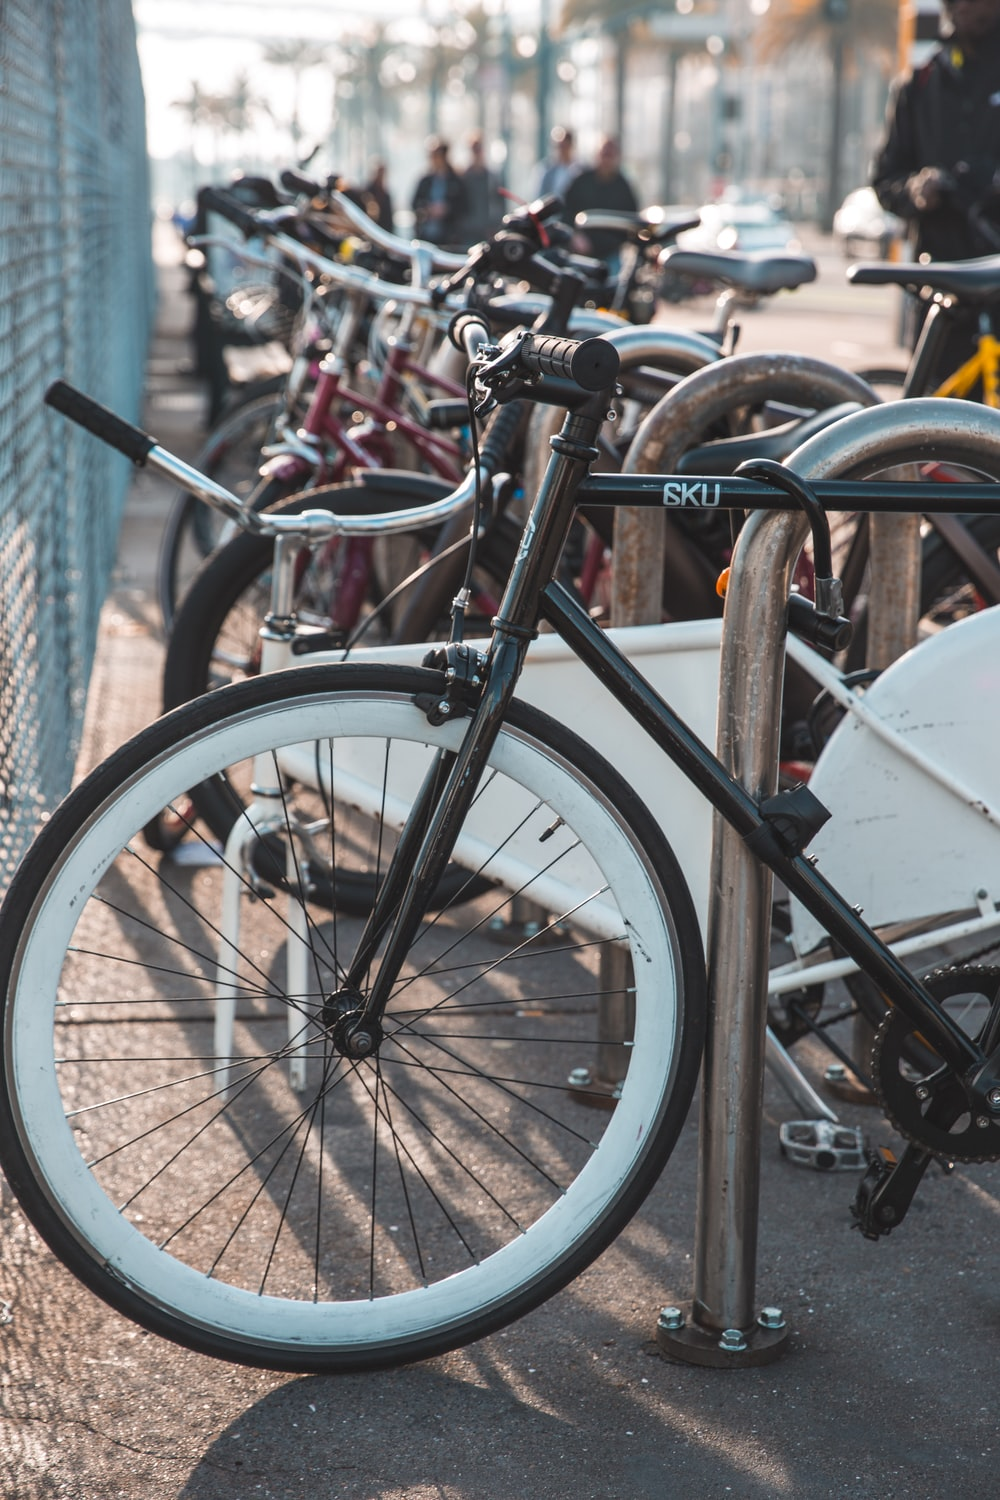 bicycles parked near grey metal fence